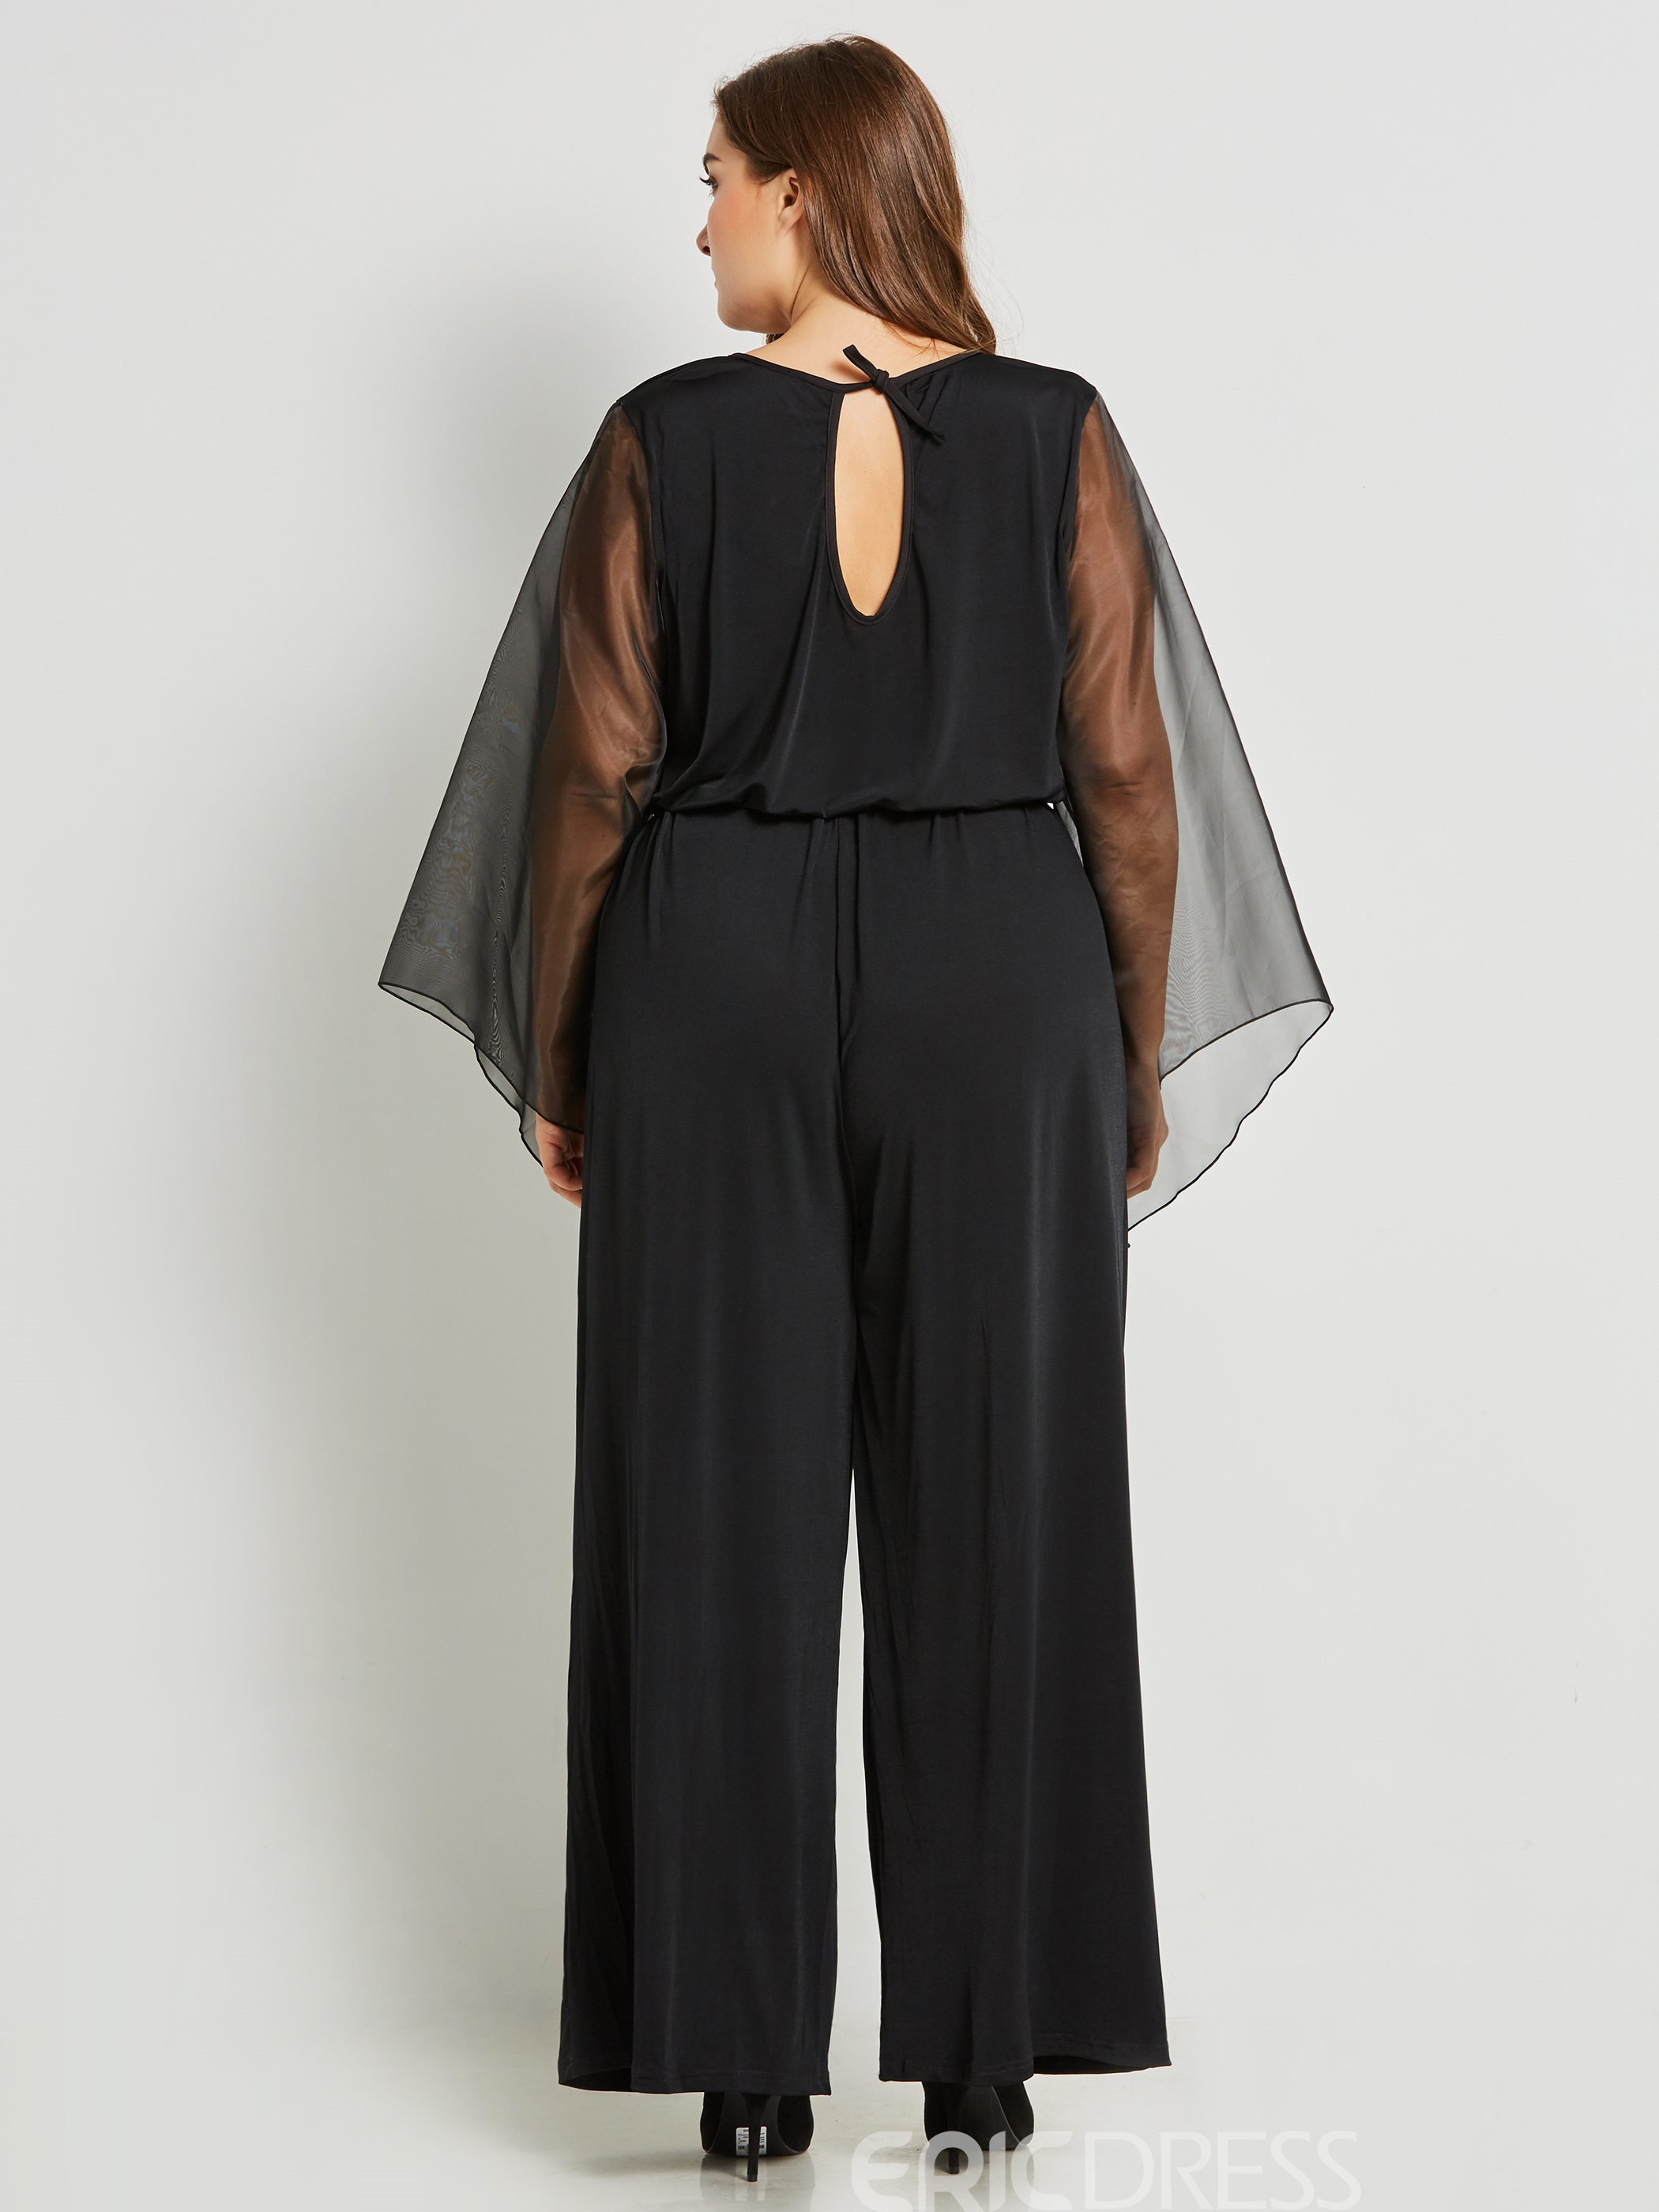 Wide Legs Mesh See-Through Patchwork Jumpsuits Pants